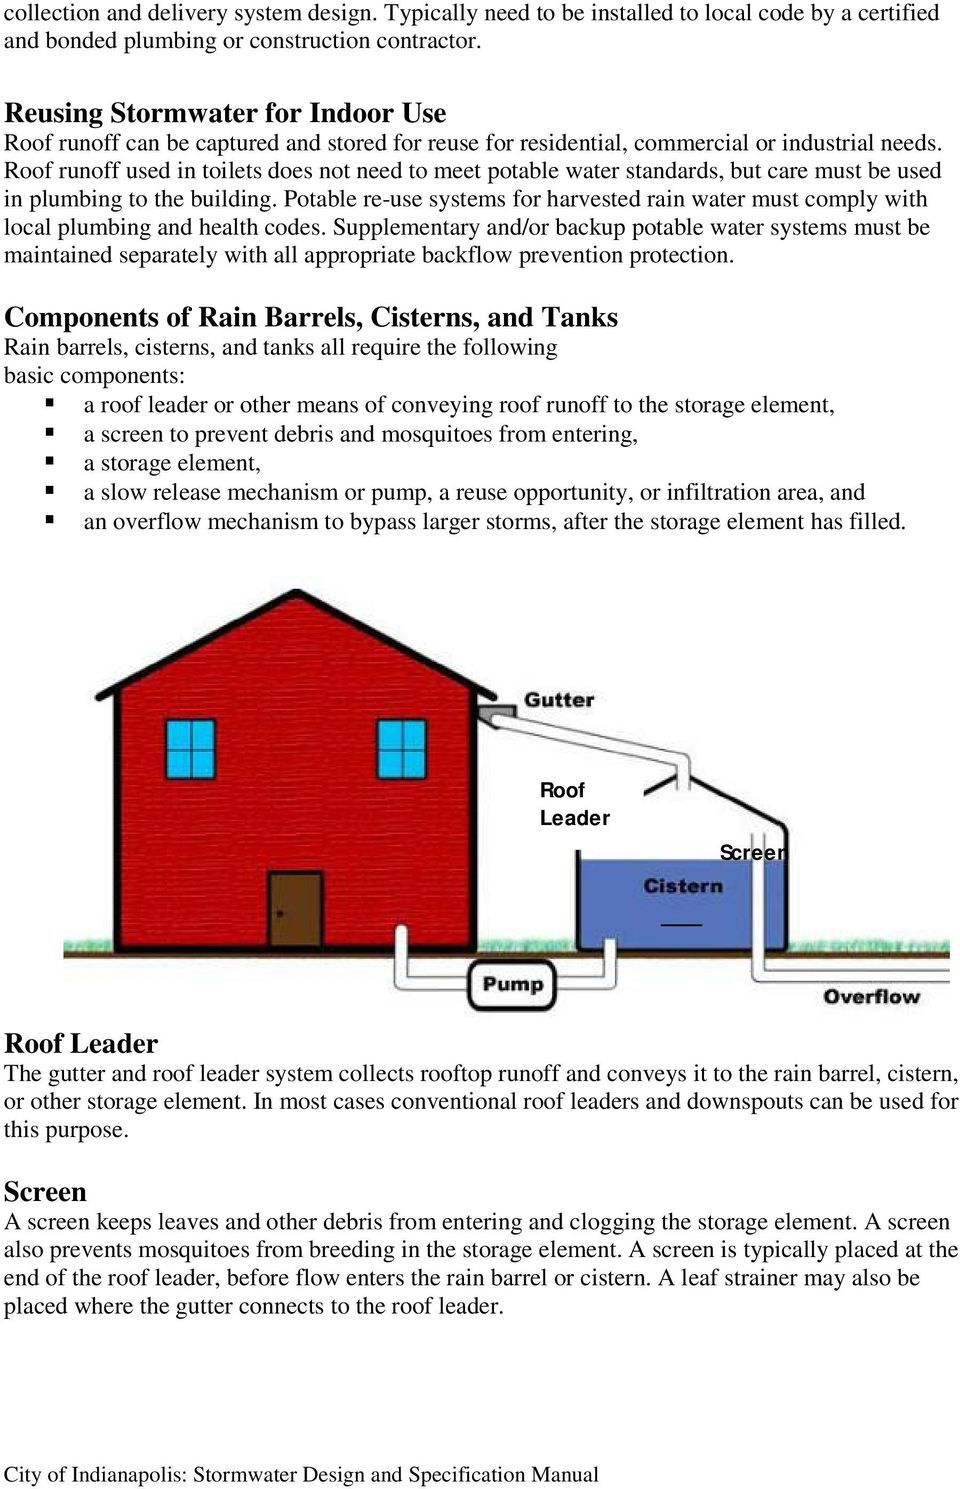 Roof runoff used in toilets does not need to meet potable water standards, but care must be used in plumbing to the building.